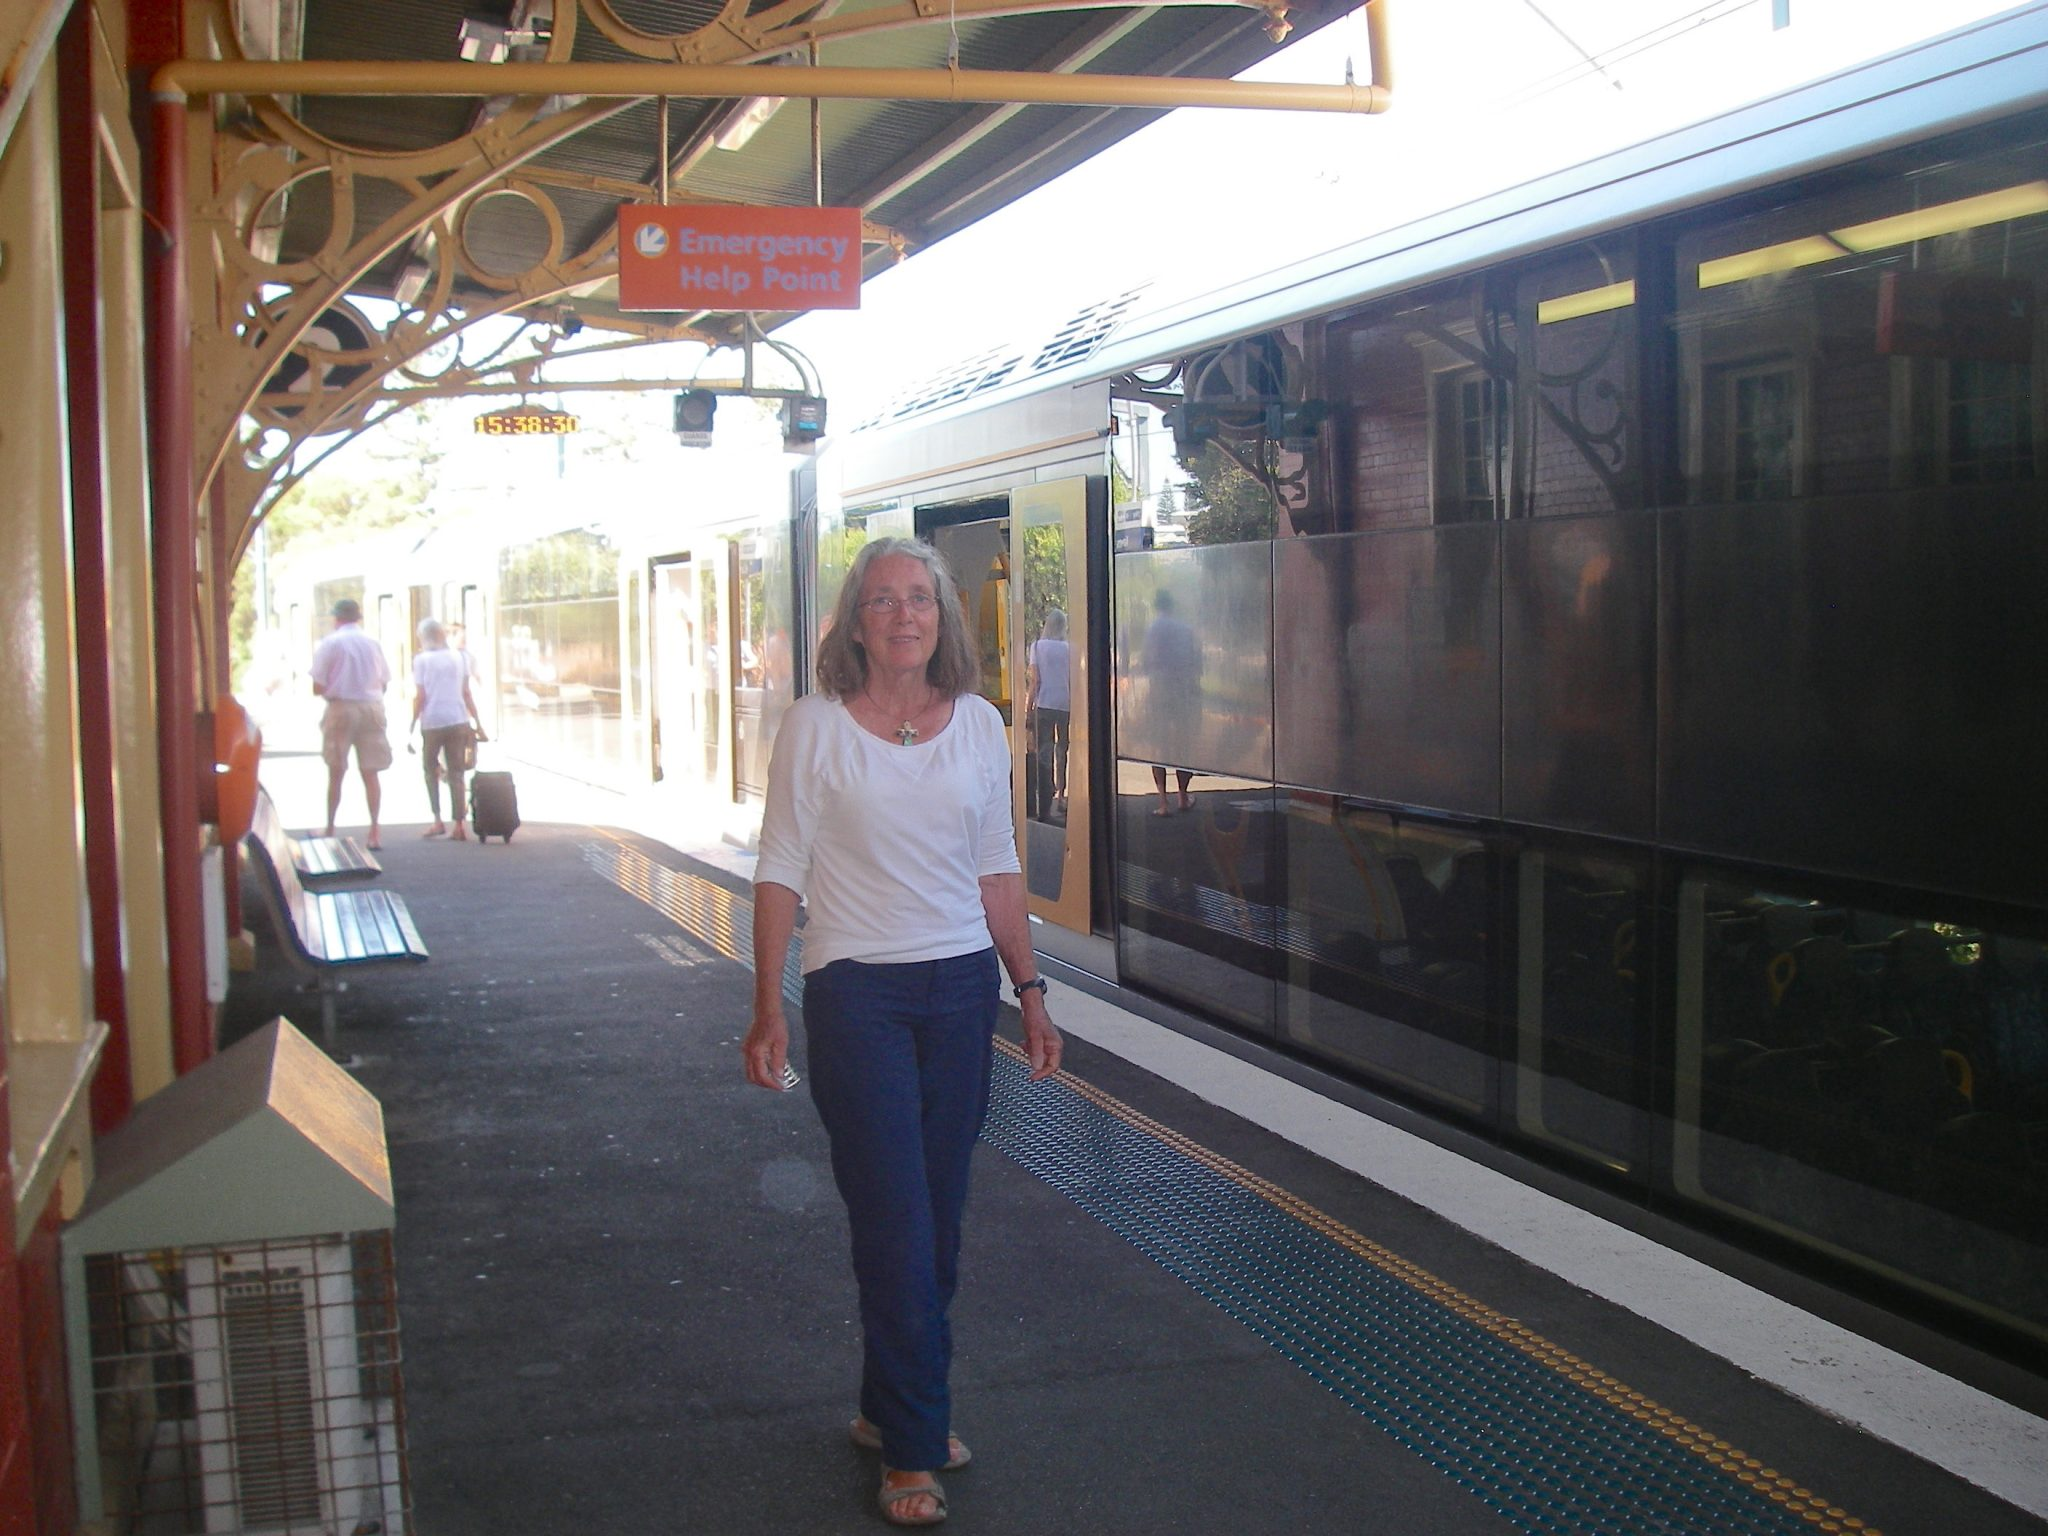 25. Anne at train station near Sydney, Australia. The Australian train system is clean, efficient, and on time!